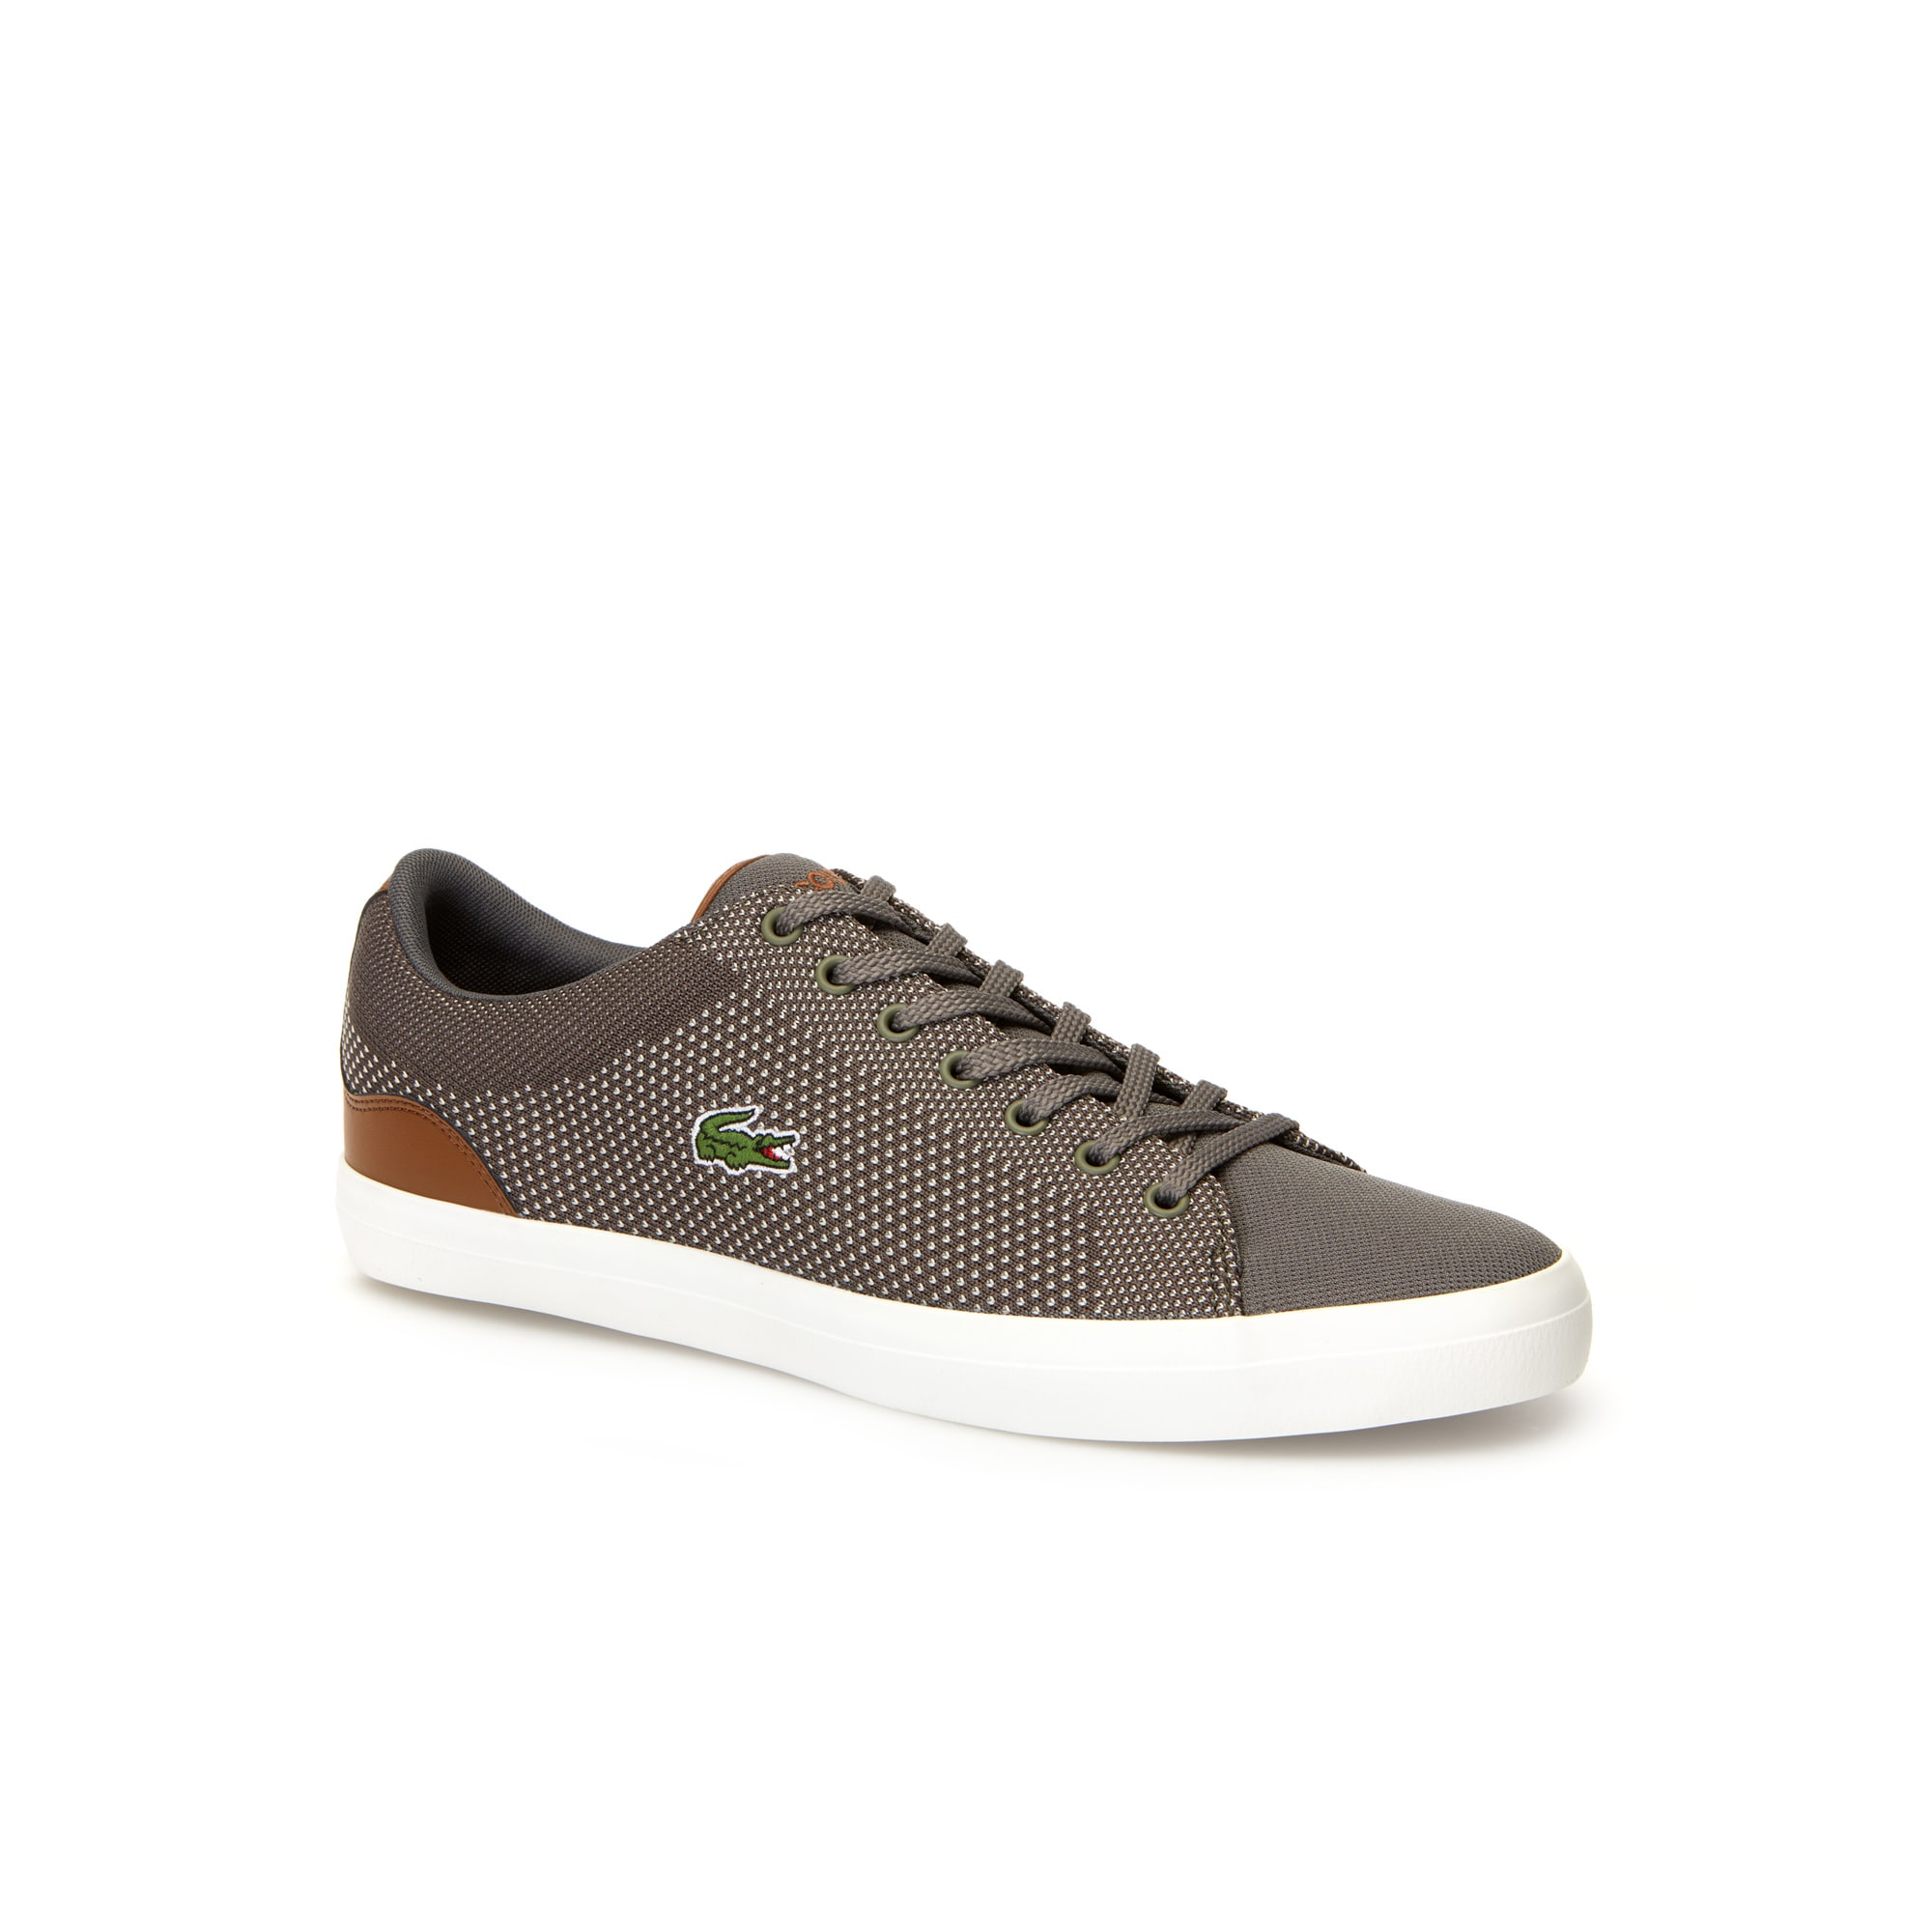 Sneakers Lerond homme textile jacquard